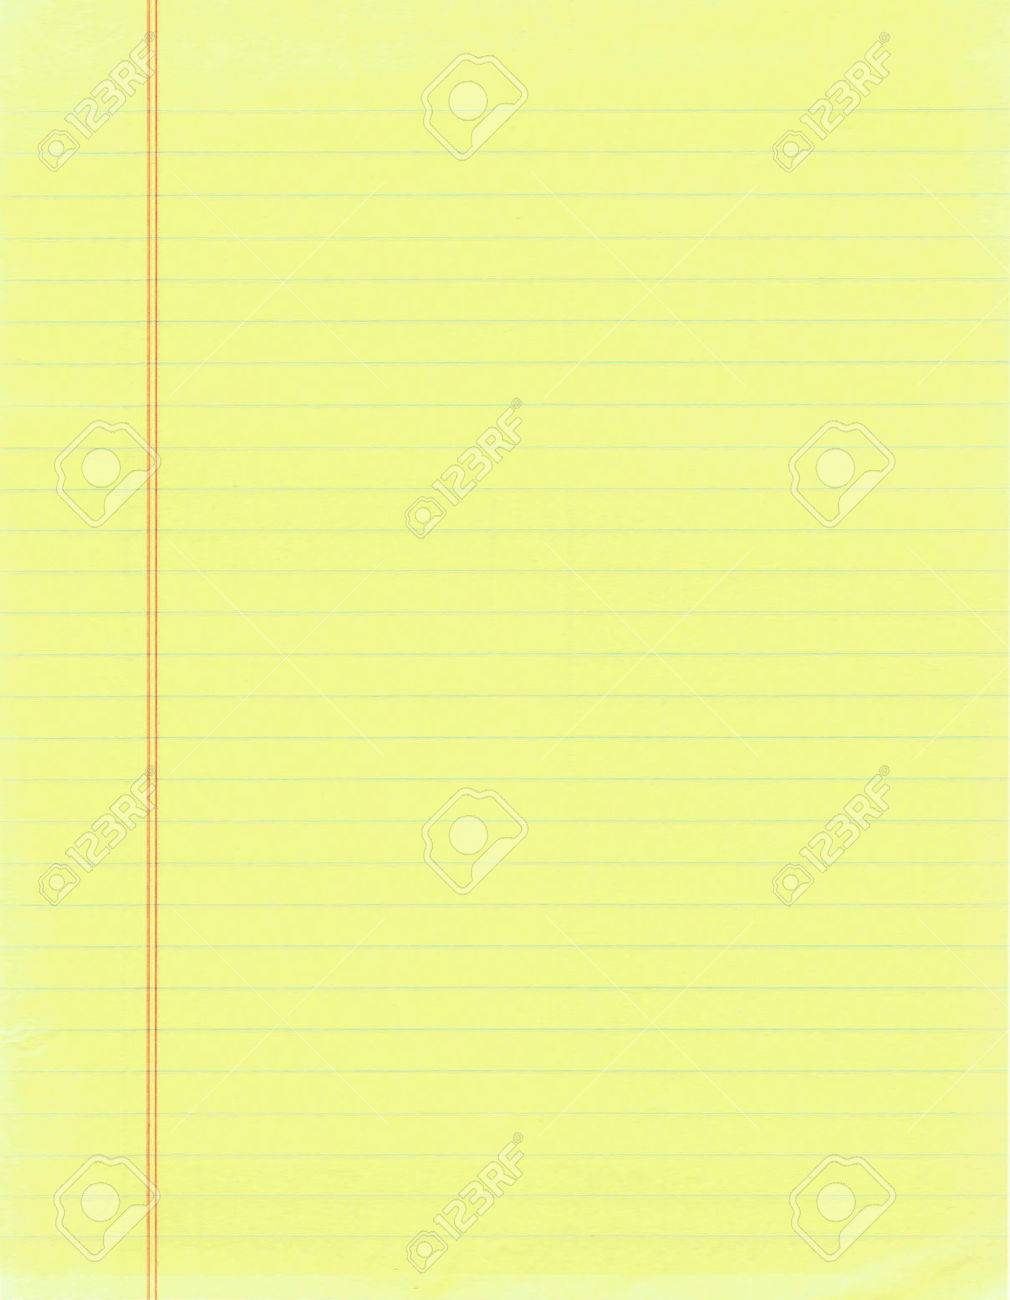 Blank Page Of Yellow Lined Paper Stock Photo, Picture And Royalty ...